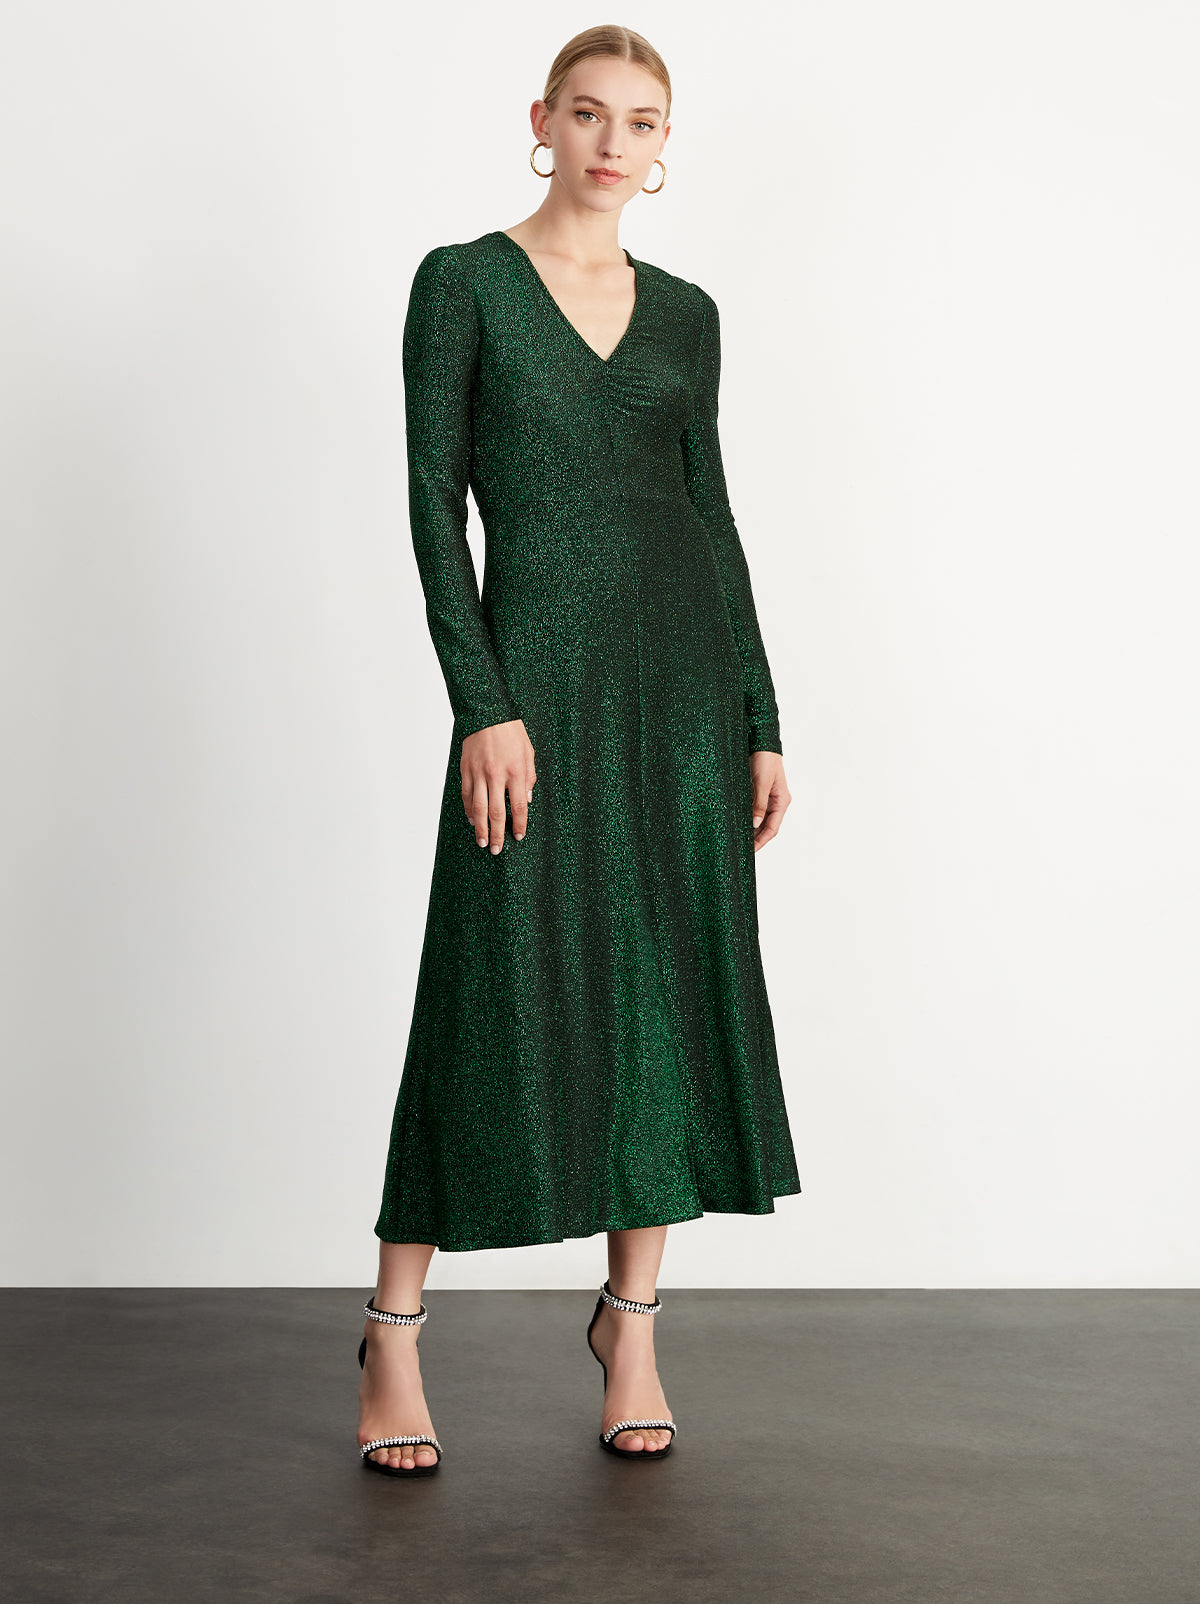 Lily Green Midi Dress by KITRI Studio